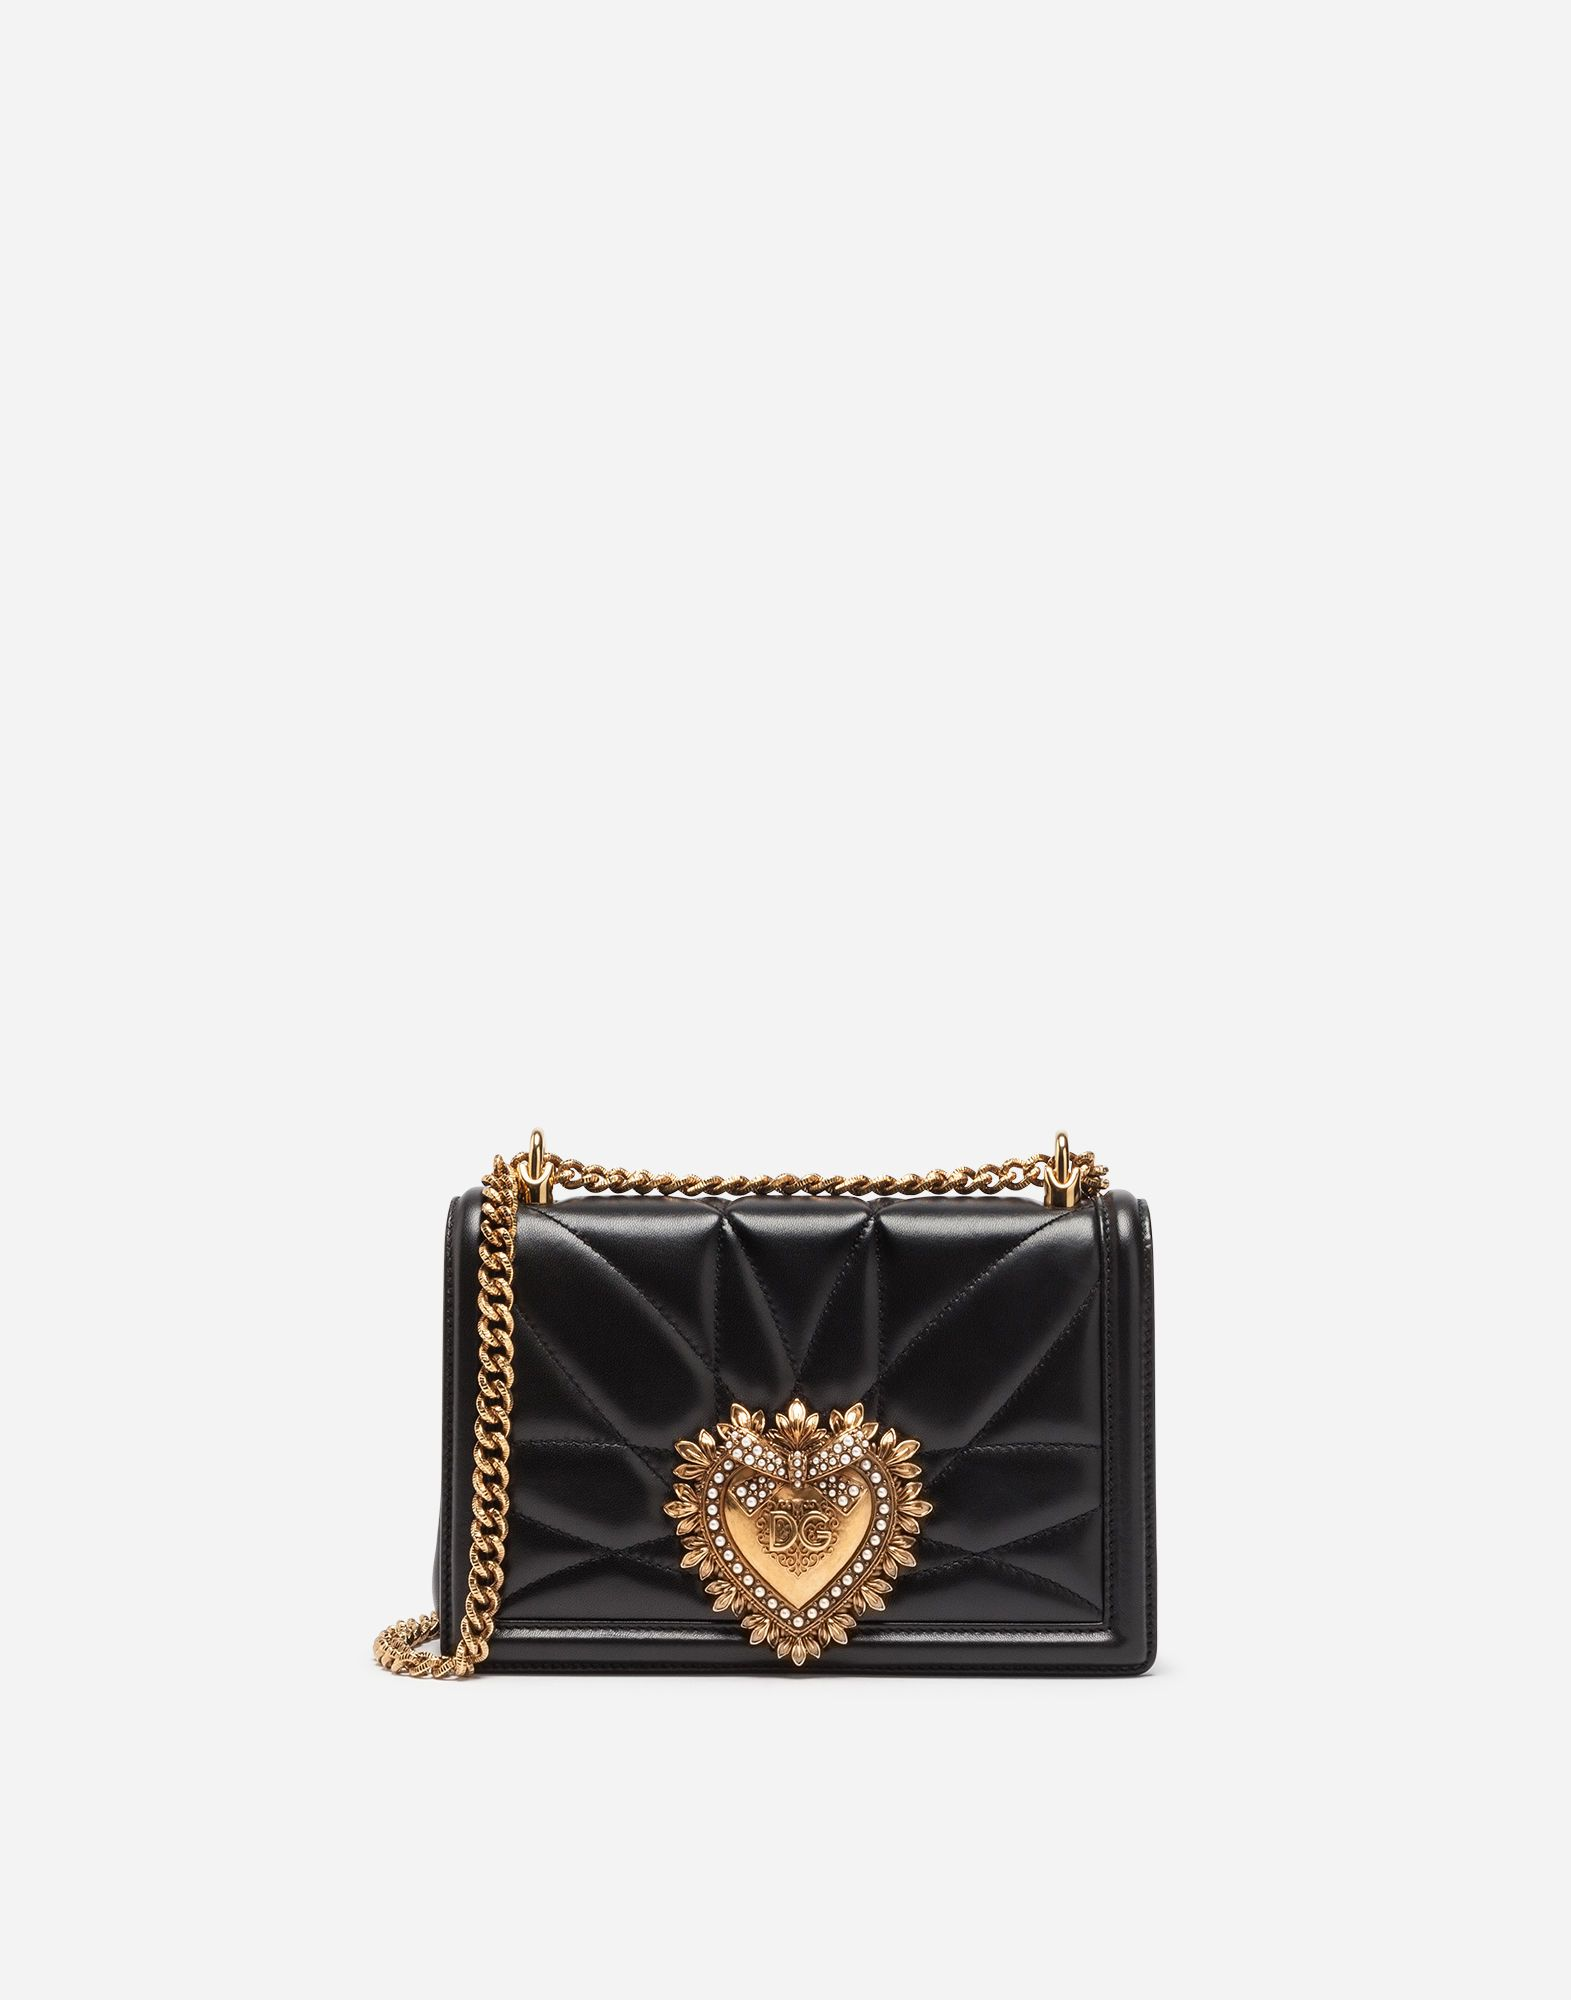 6b53a4622e DOLCE   GABBANA MEDIUM DEVOTION BAG IN QUILTED NAPPA LEATHER.  dolcegabbana   bags  shoulder bags  leather  metallic